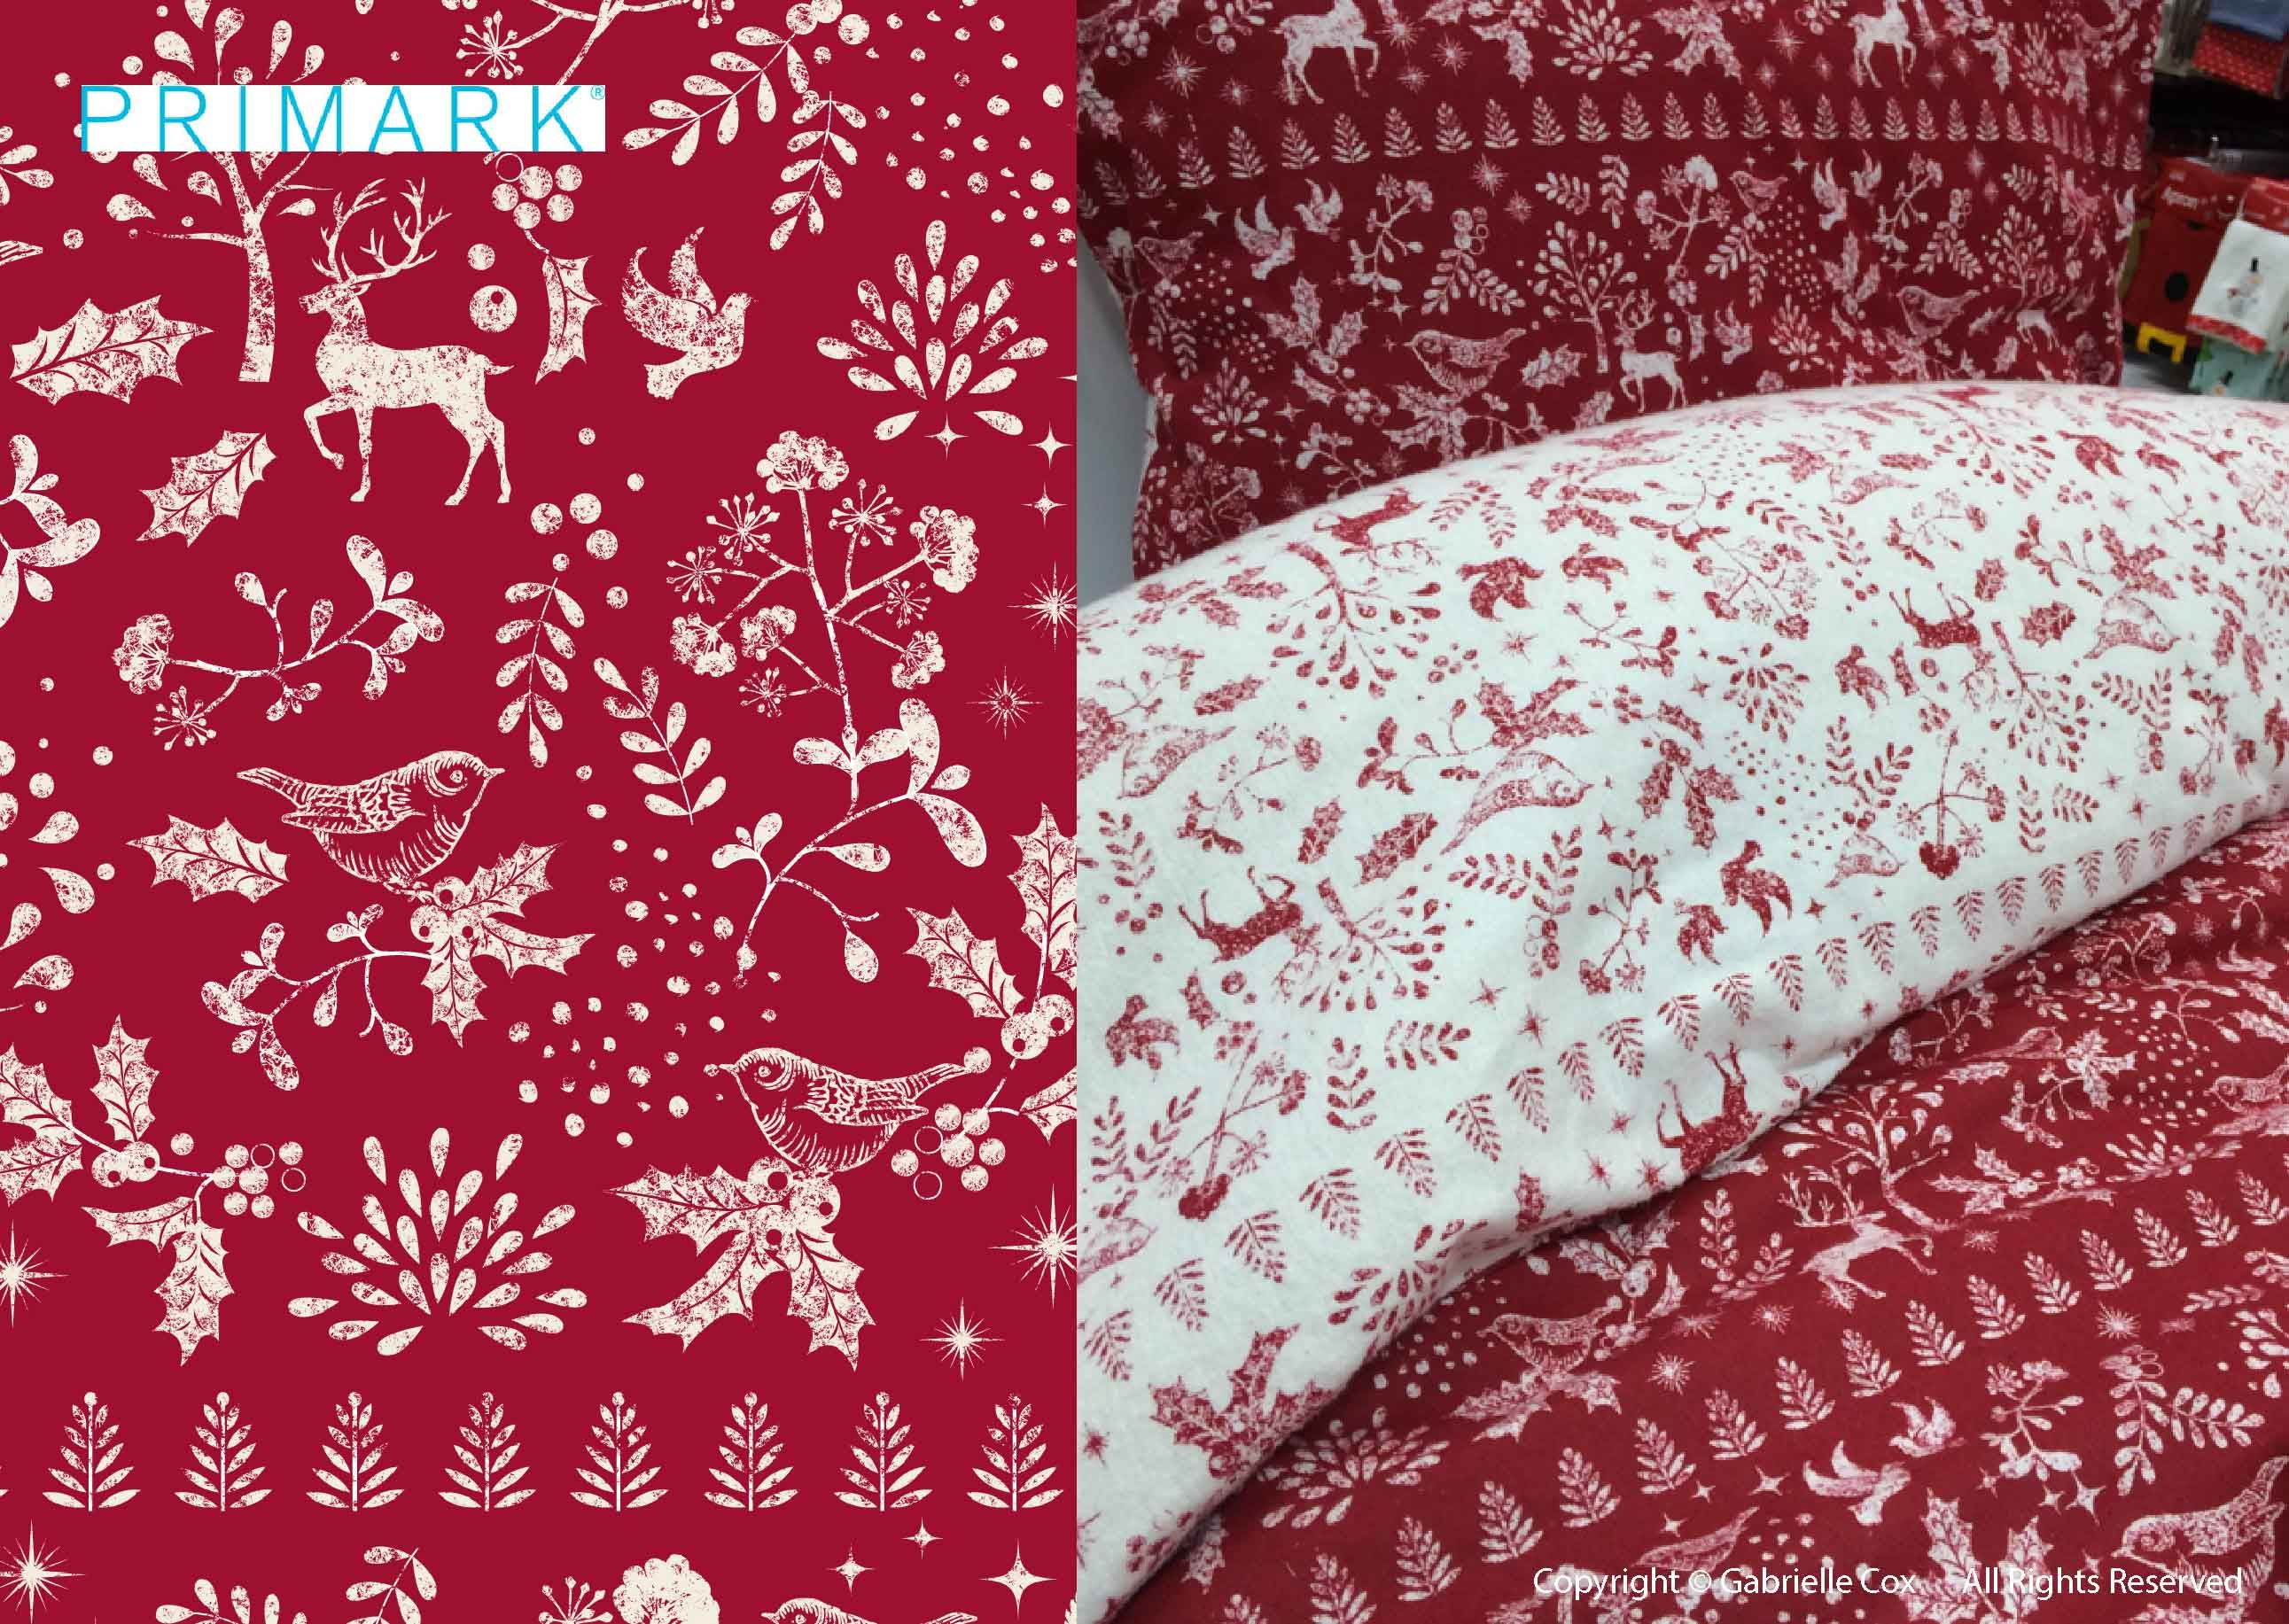 Primark christmas Bedding Christmas bedding, Primark